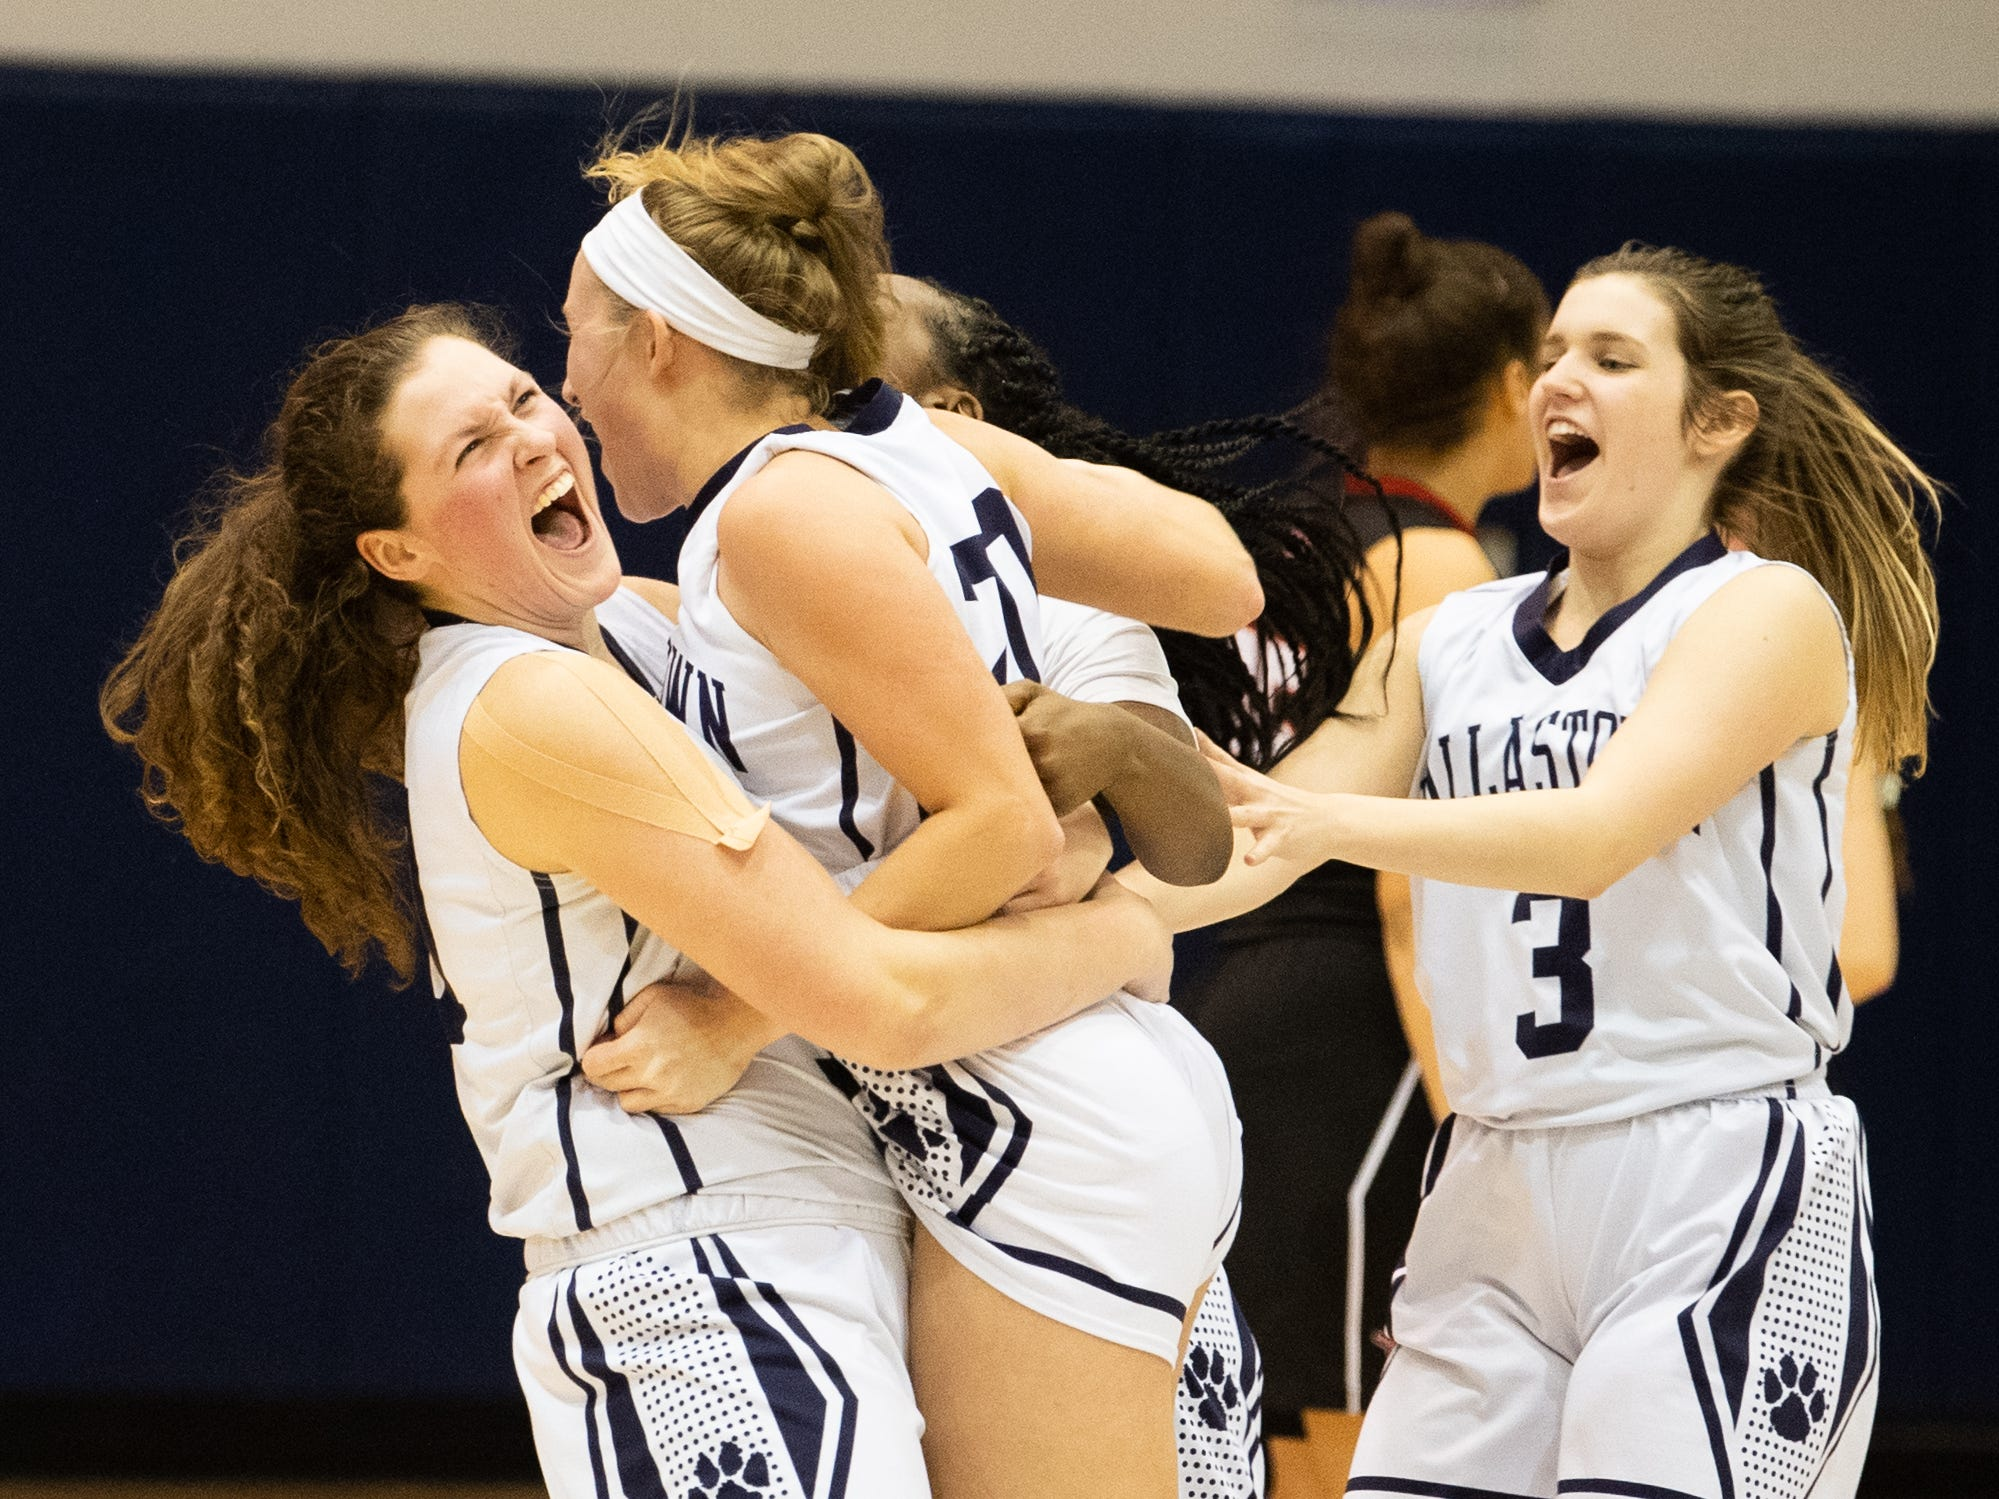 Dallastown players rush the floor after Lily Jamison (20) hits a game winning three-pointer solidifying a their triple overtime victory over South Western, Tuesday, January 22, 2019. The Wildcats defeated the Mustangs 38-35.